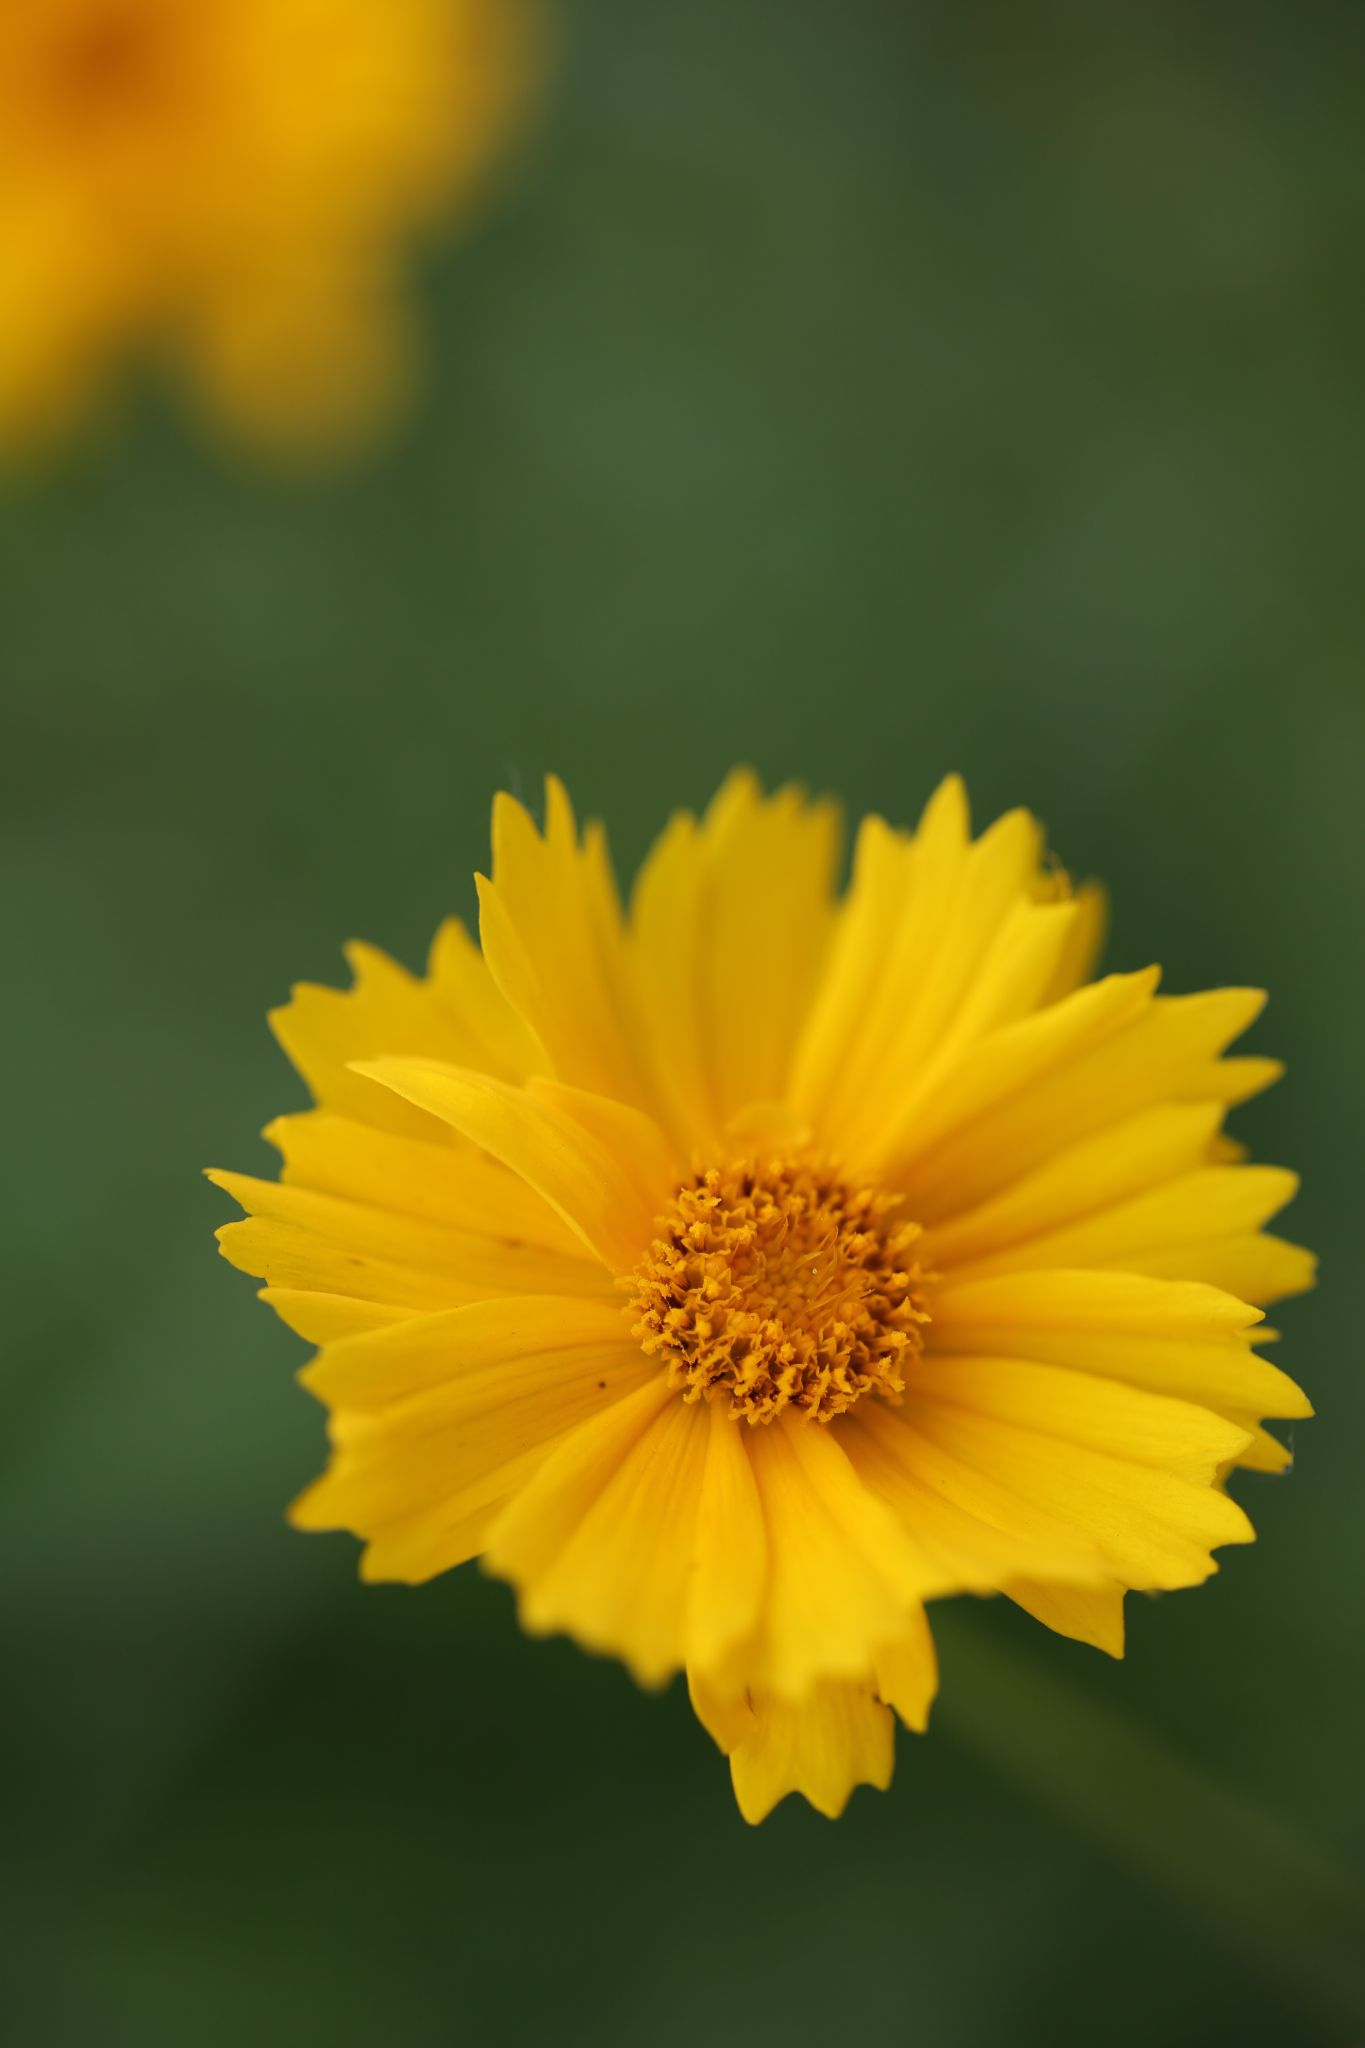 A Yellow Flower by Atila_Yumusakkaya